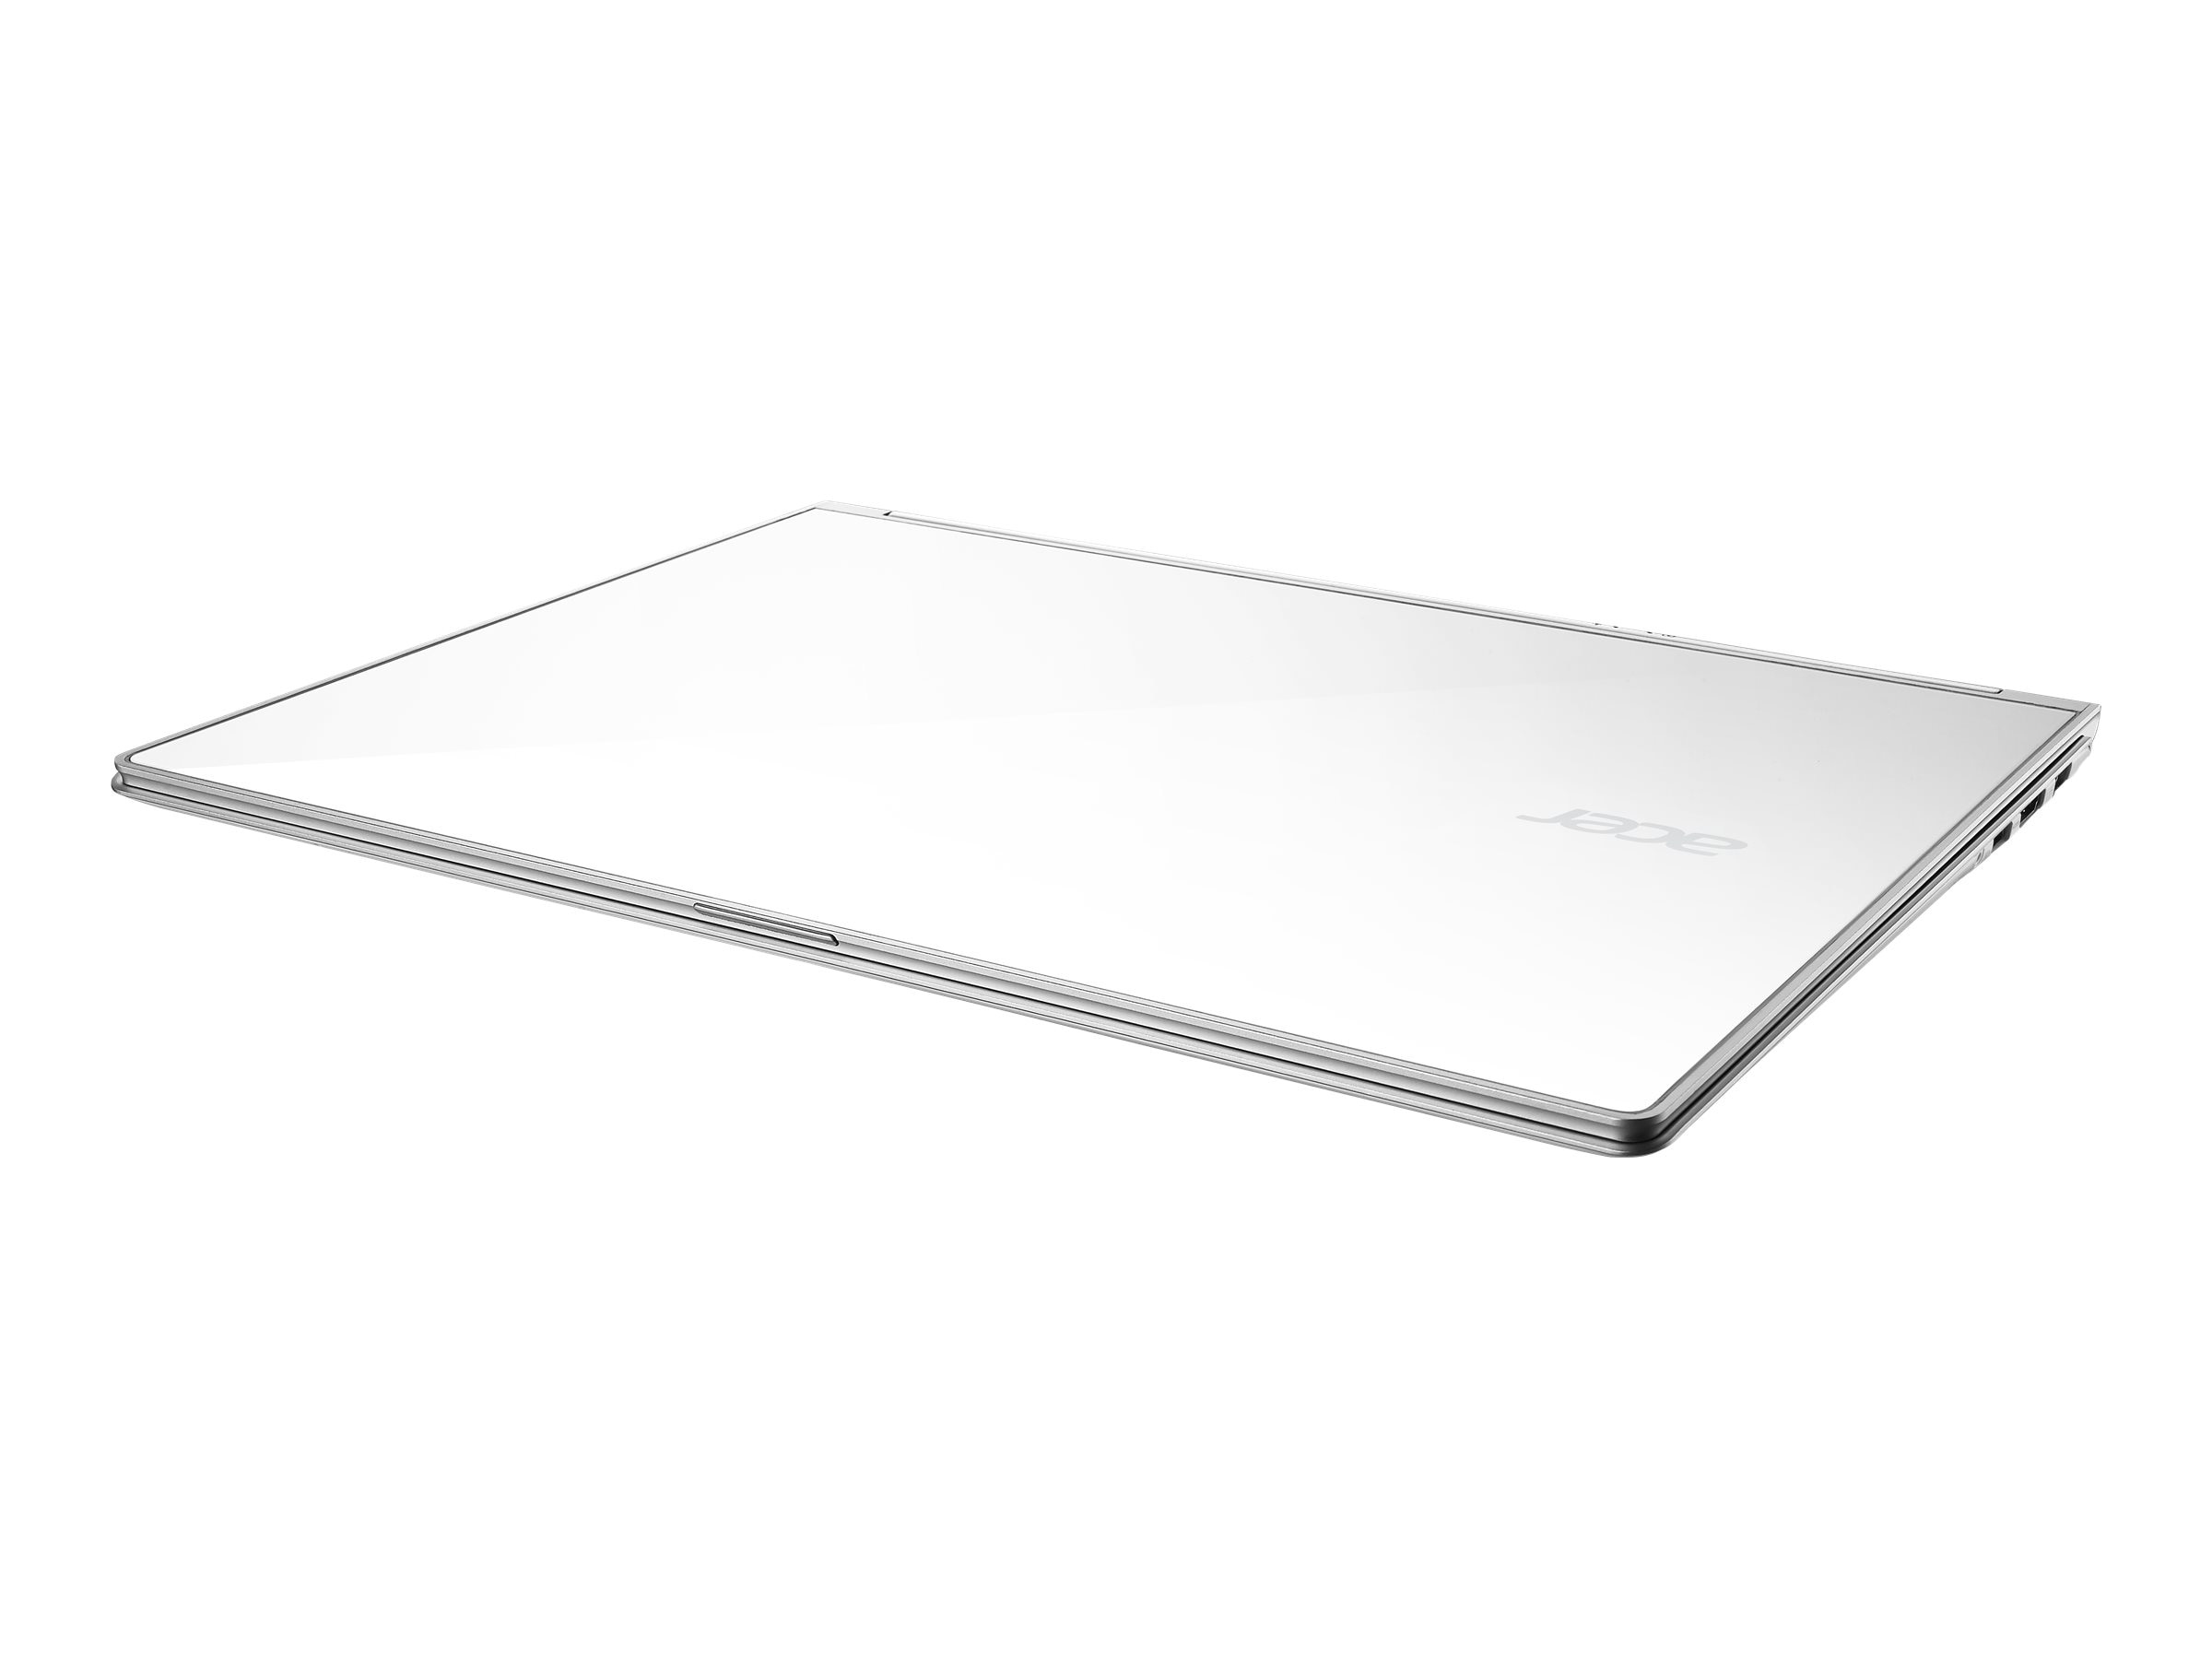 Acer Aspire S7-392-7837 1.8GHz Core i7 13.3in display, NX.MG4AA.013, 17547221, Notebooks